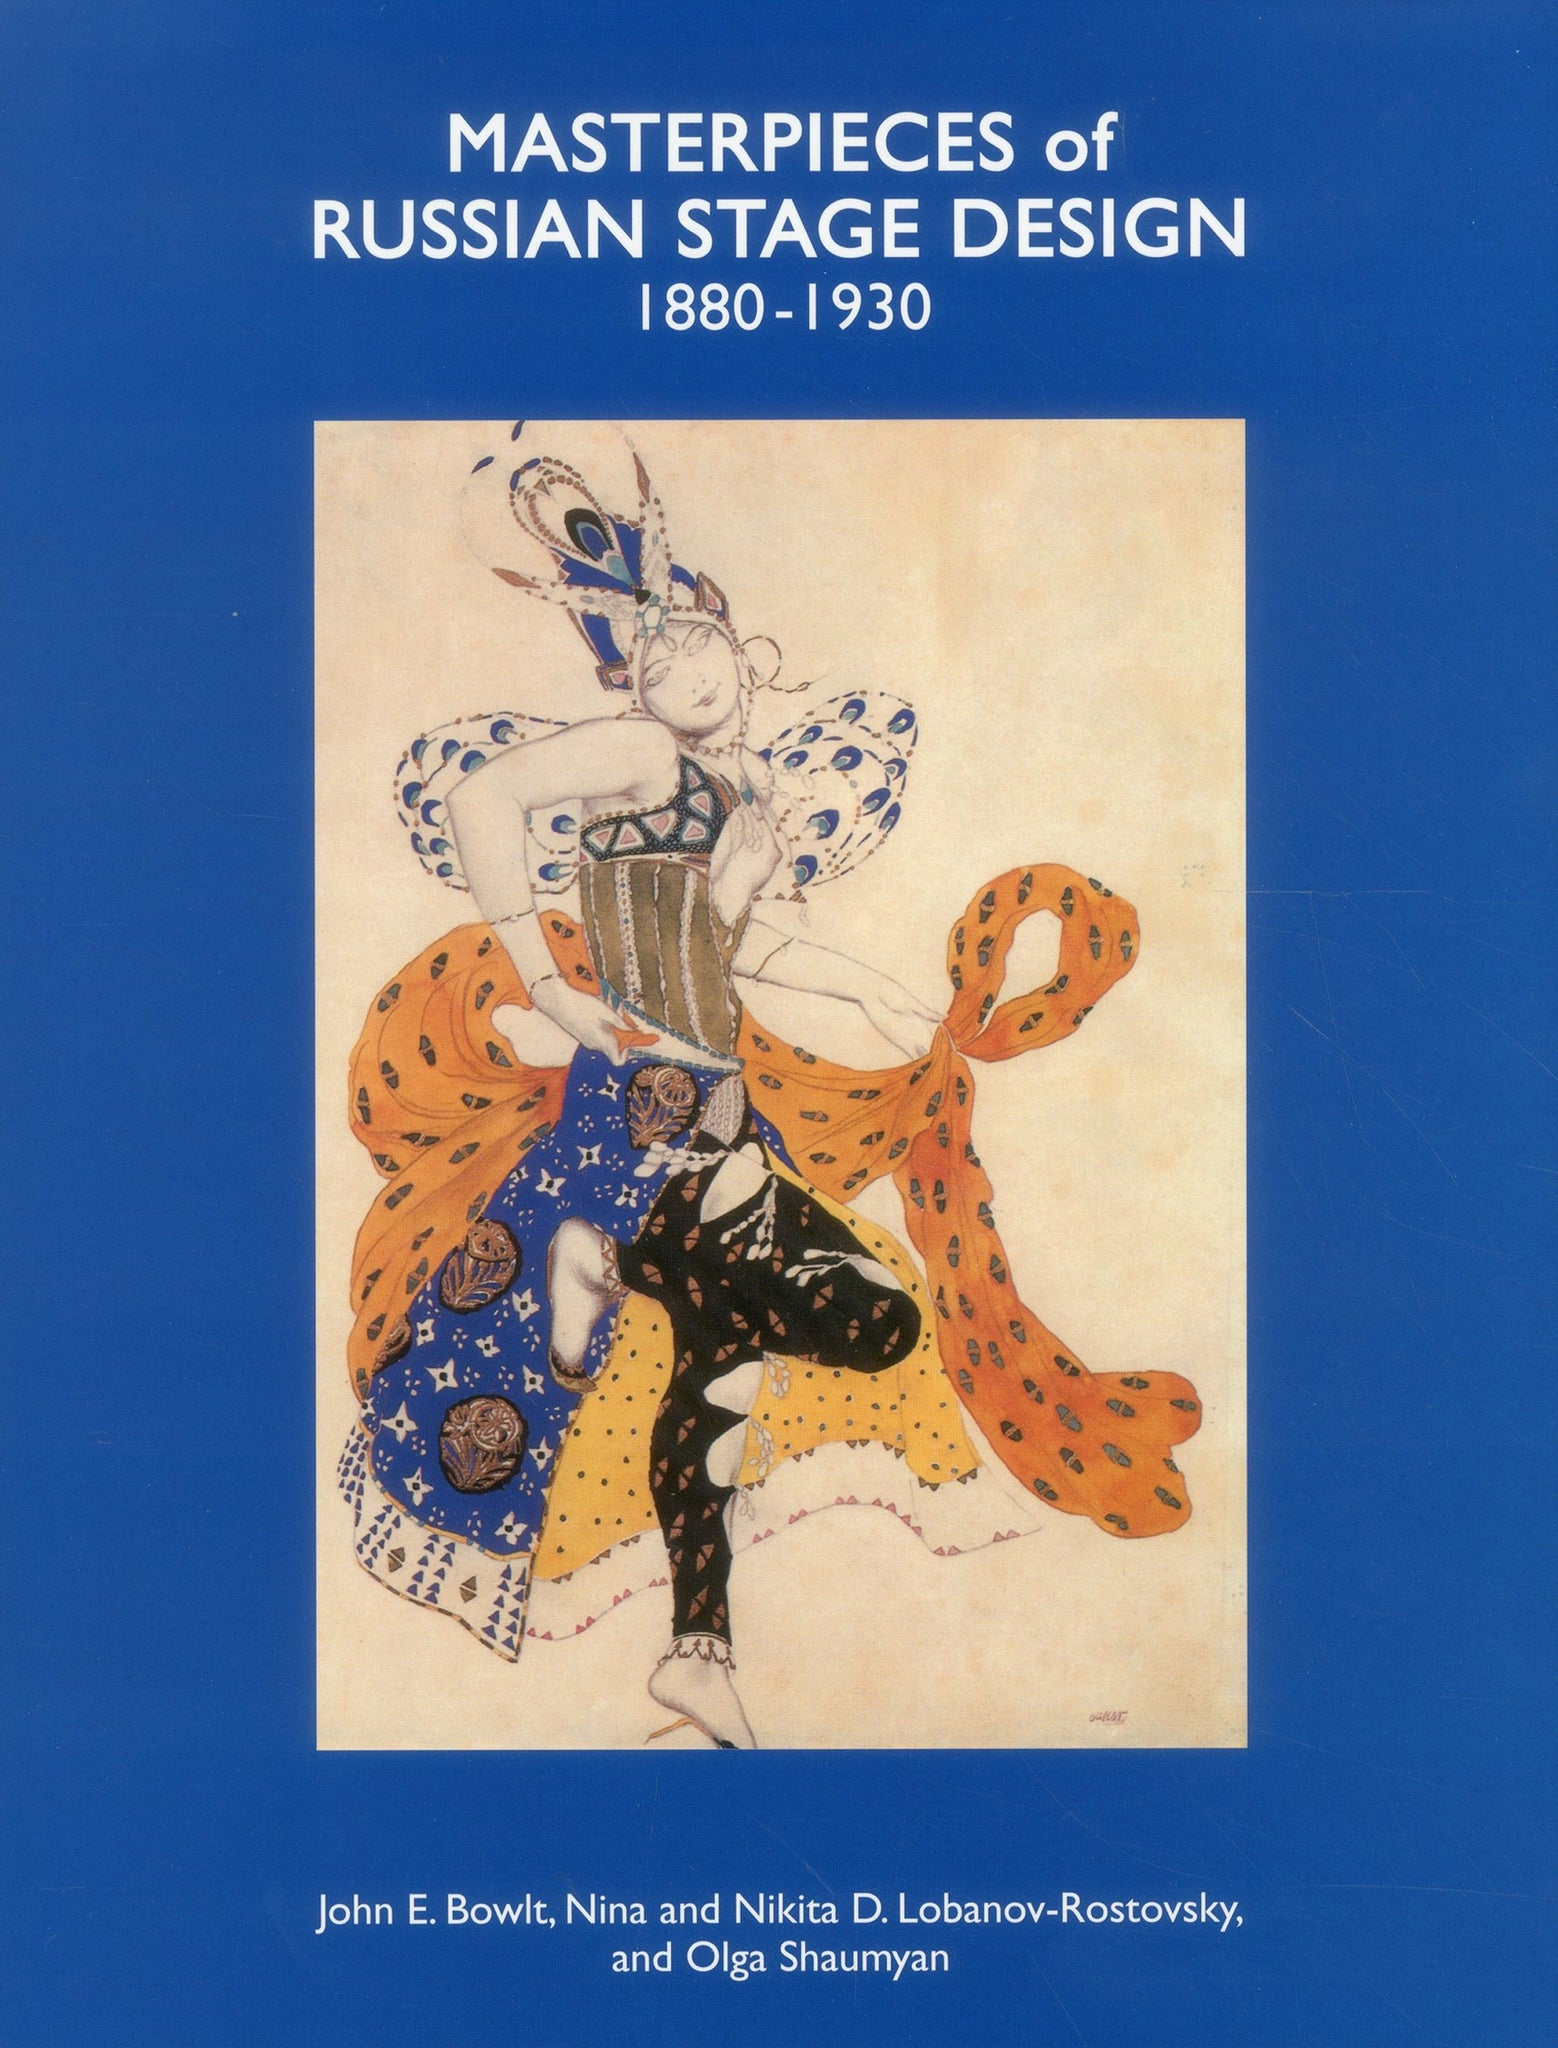 Masterpieces of Russian Stage Design: 1880-1930 - Book at Kavi Gupta Editions